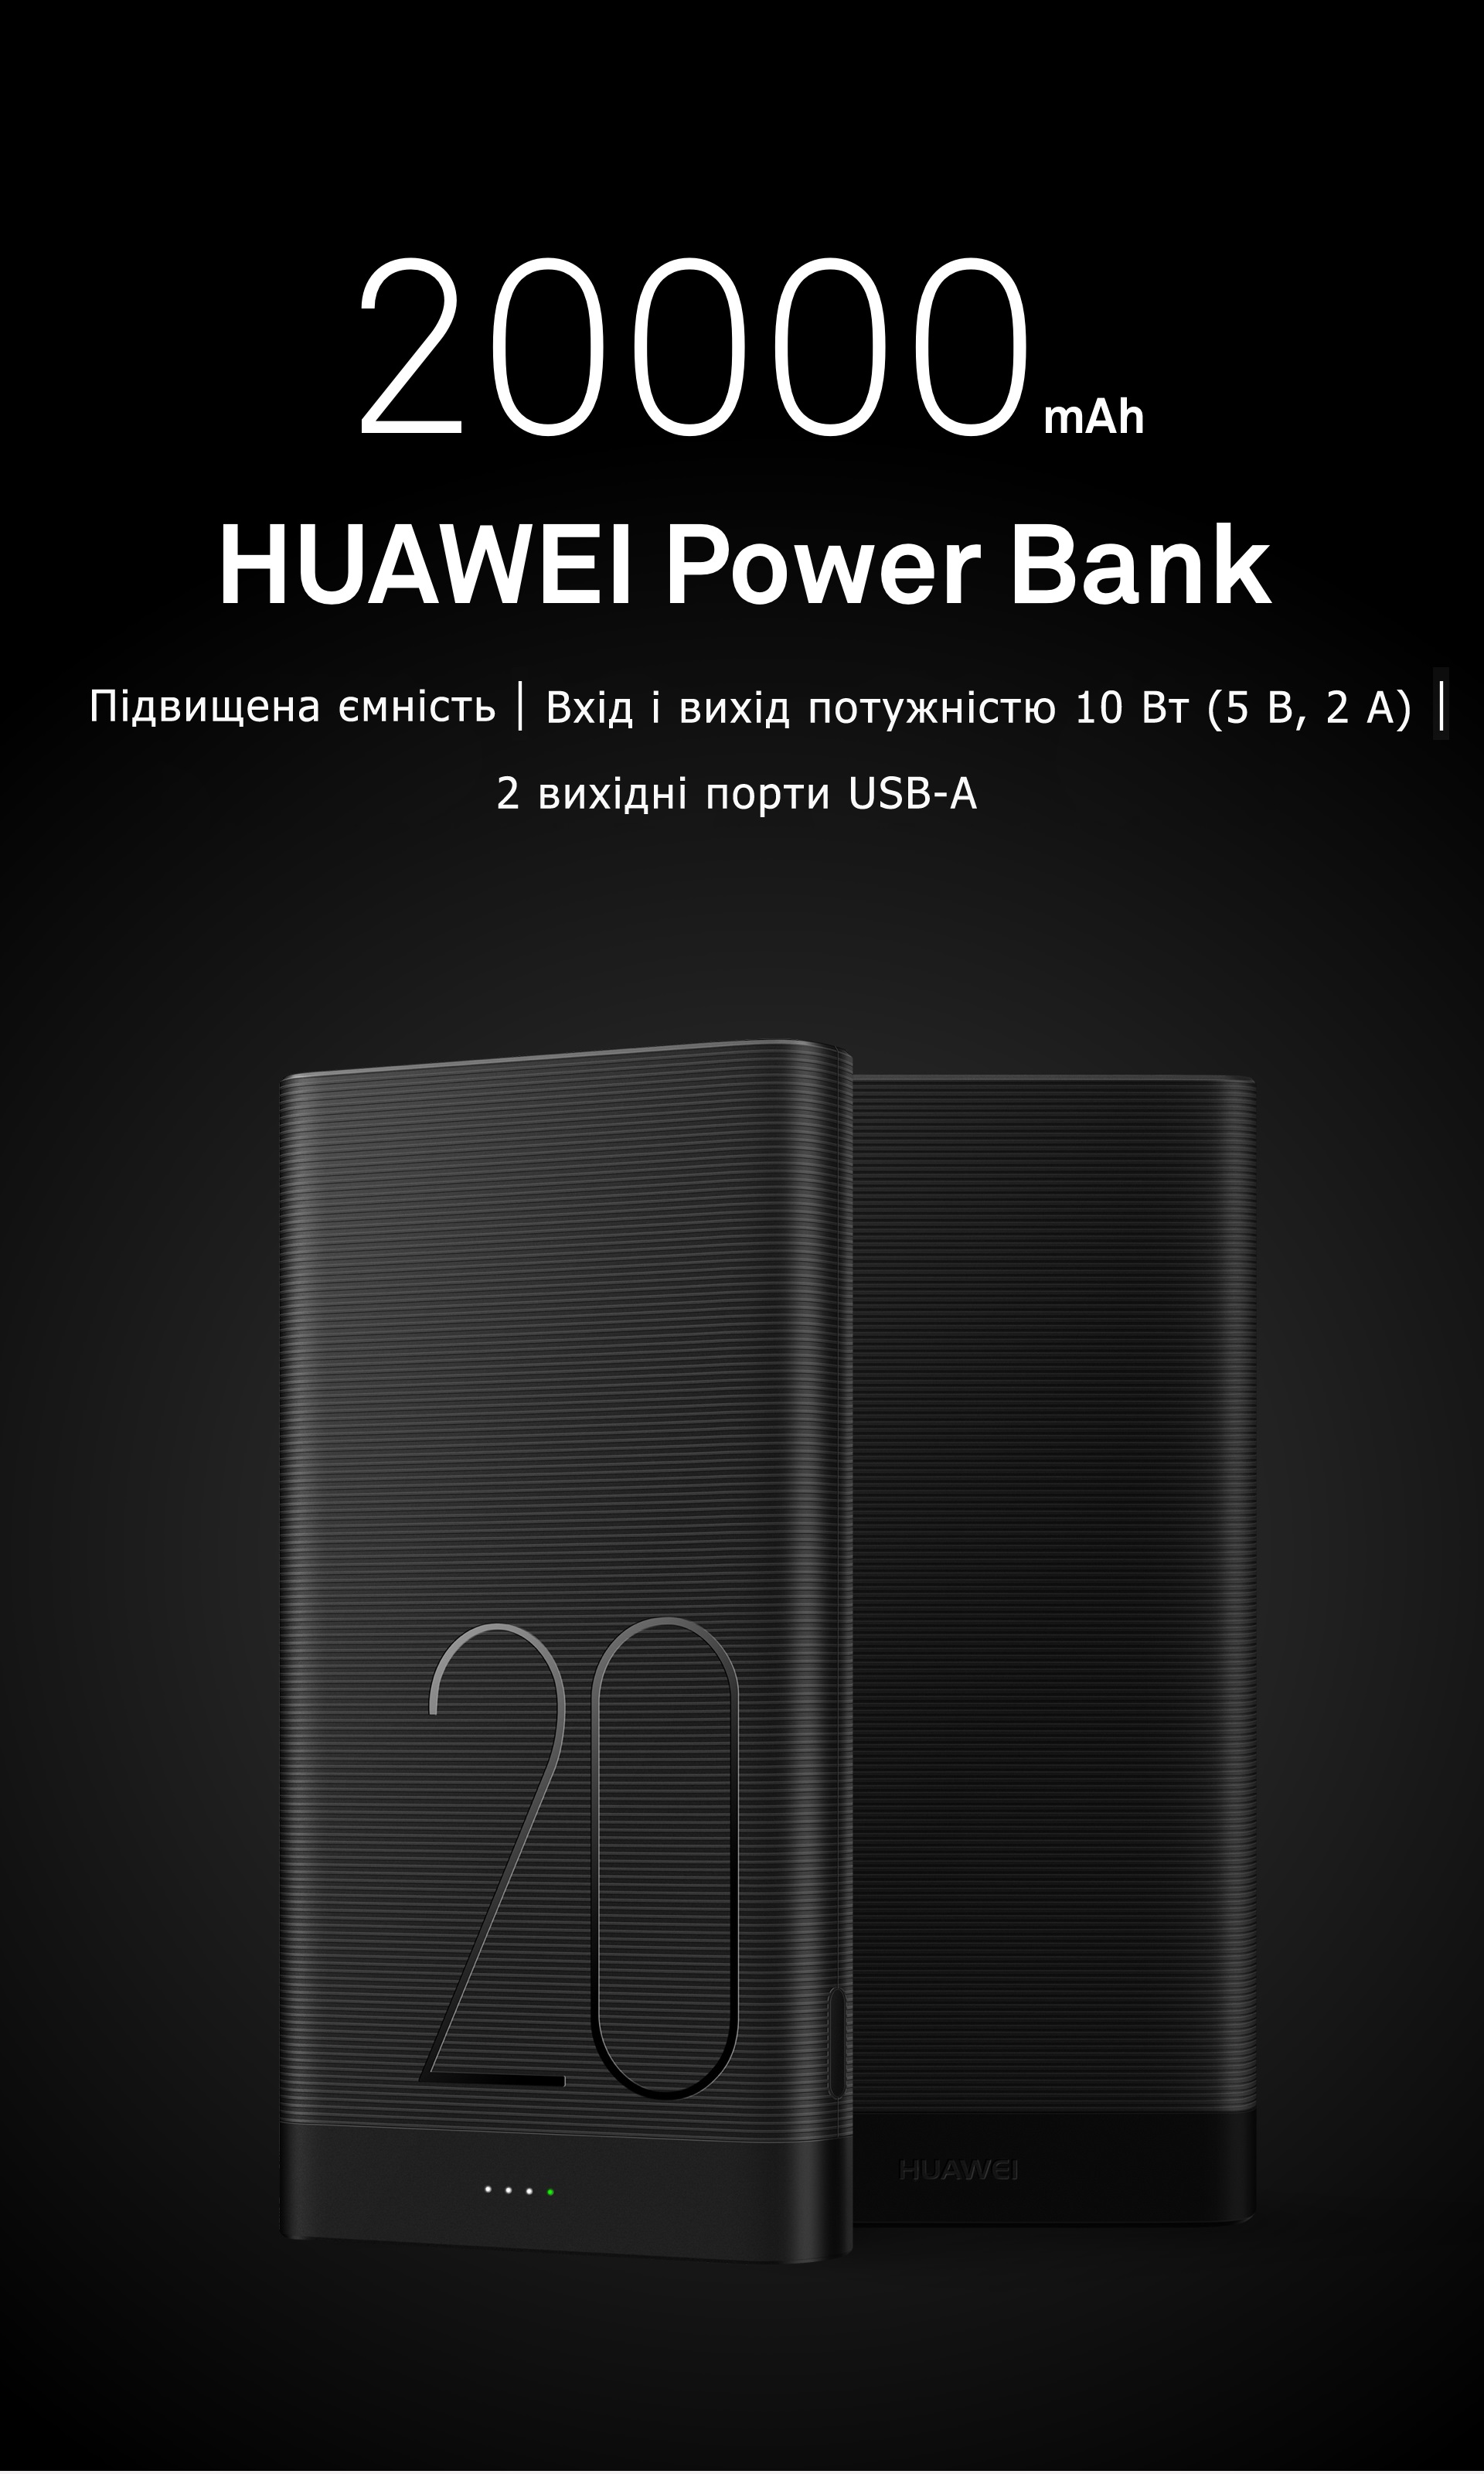 HUAWEI 20000mAh Power Bank